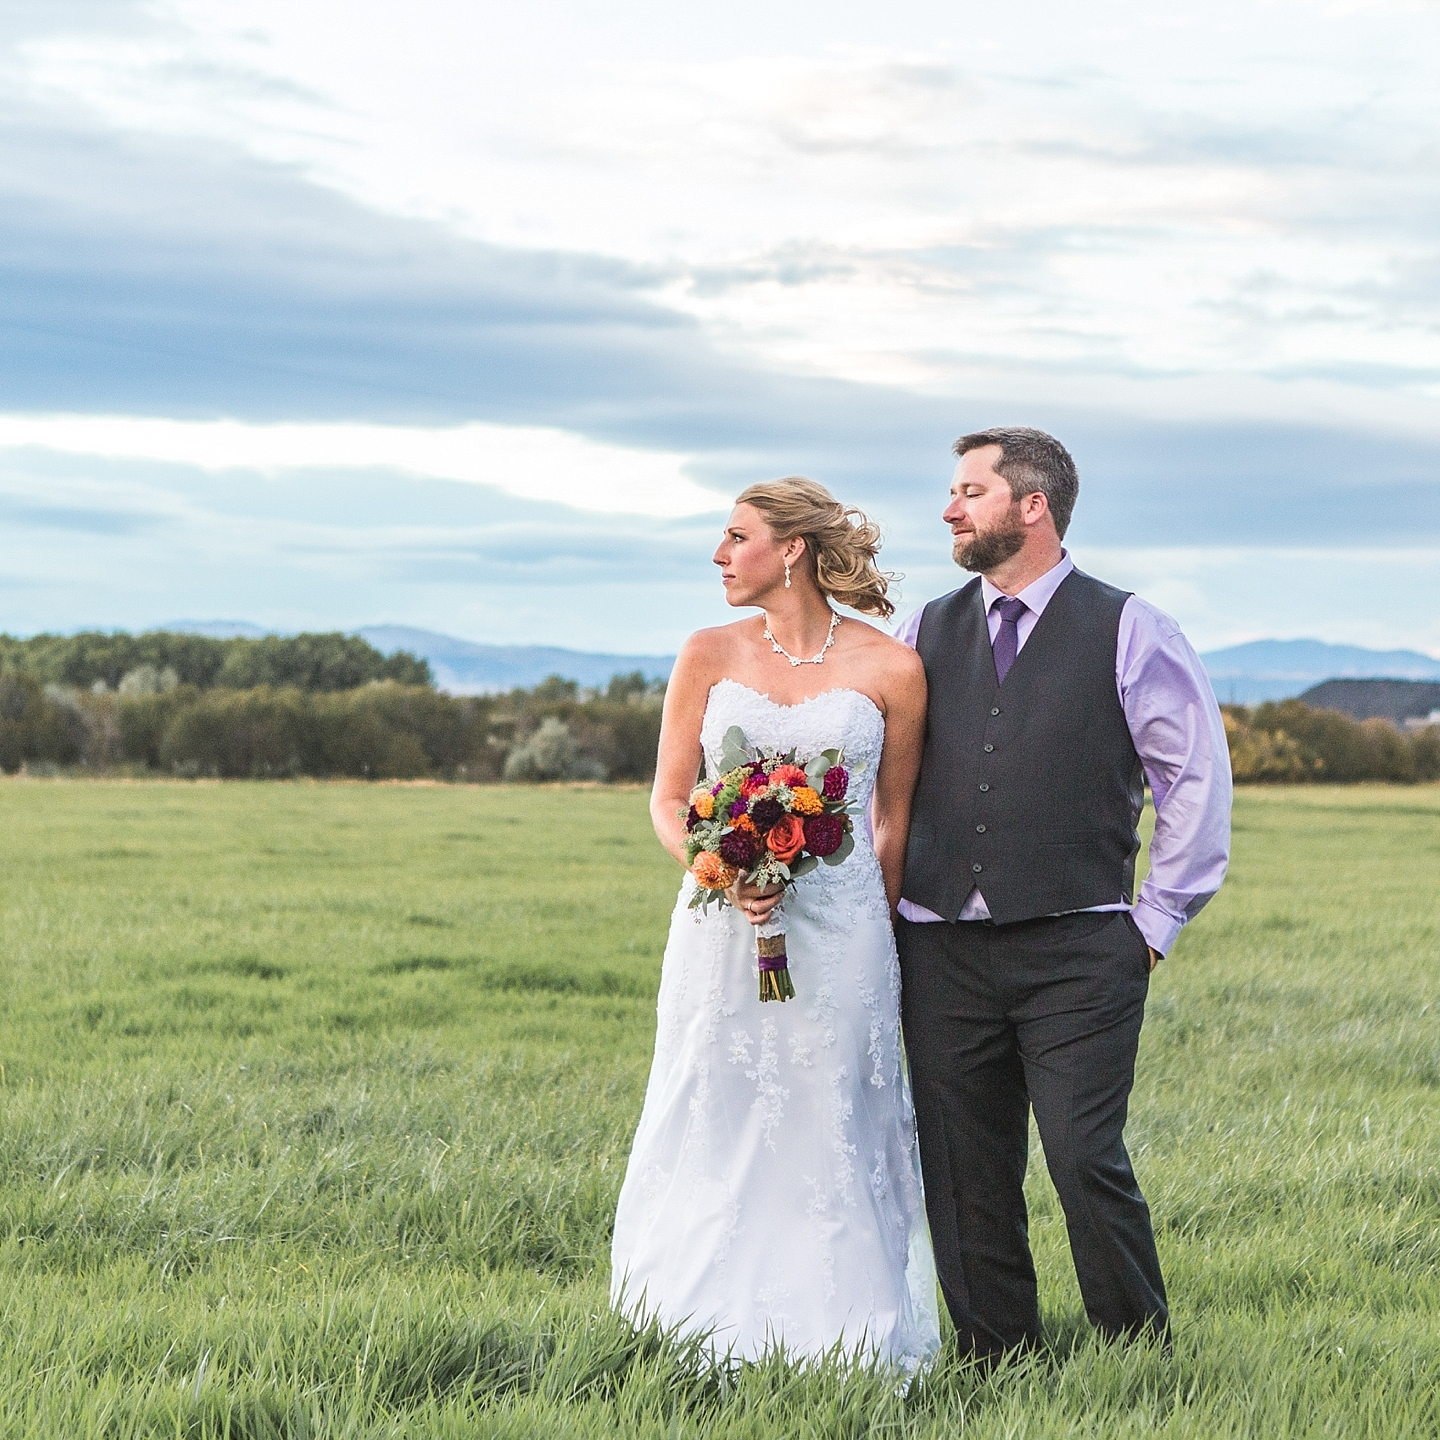 Ashley + Nick, helena, mt - Jason and Jadean, are AMAZING! These two were with us from start to finish the day of our wedding. Jason came to the salon that I was getting my hair done at to start shooting the